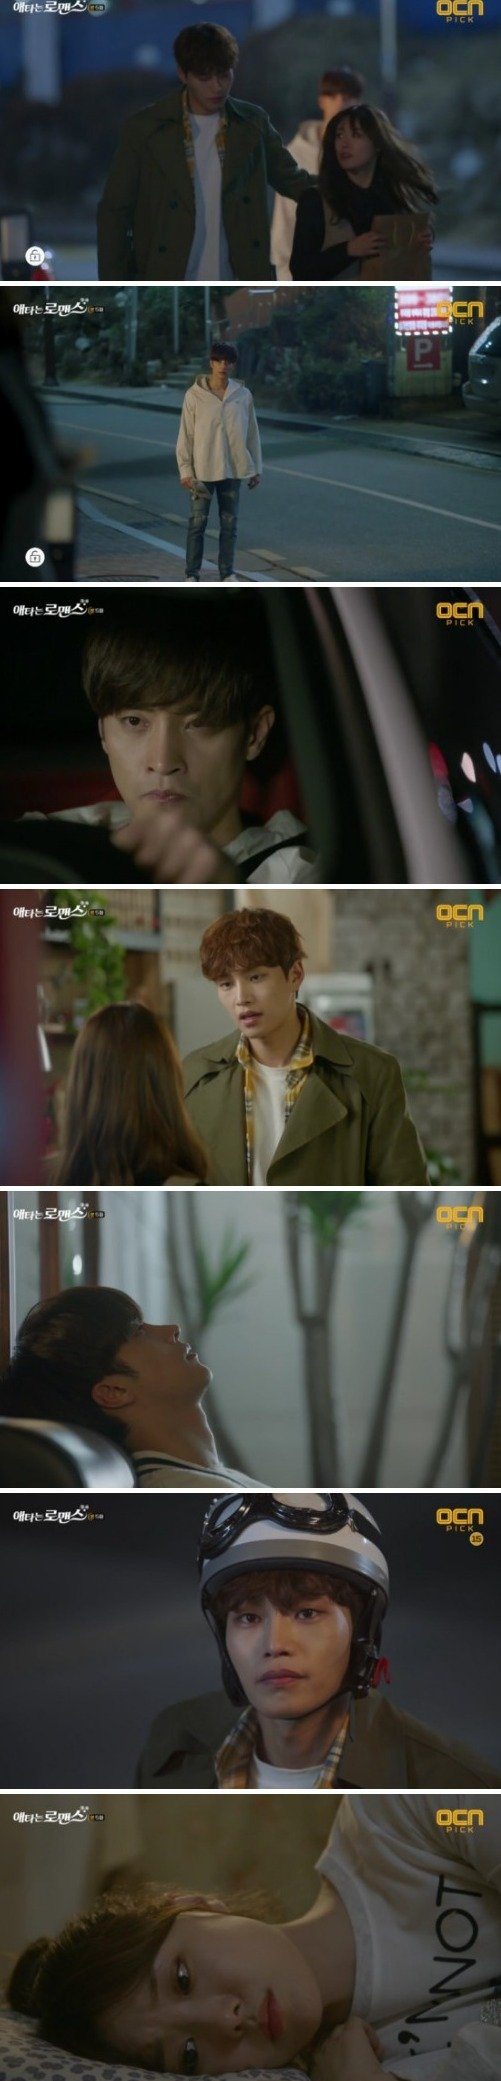 [Spoiler] Added episode 5 captures for the Korean drama 'My Secret Romance'